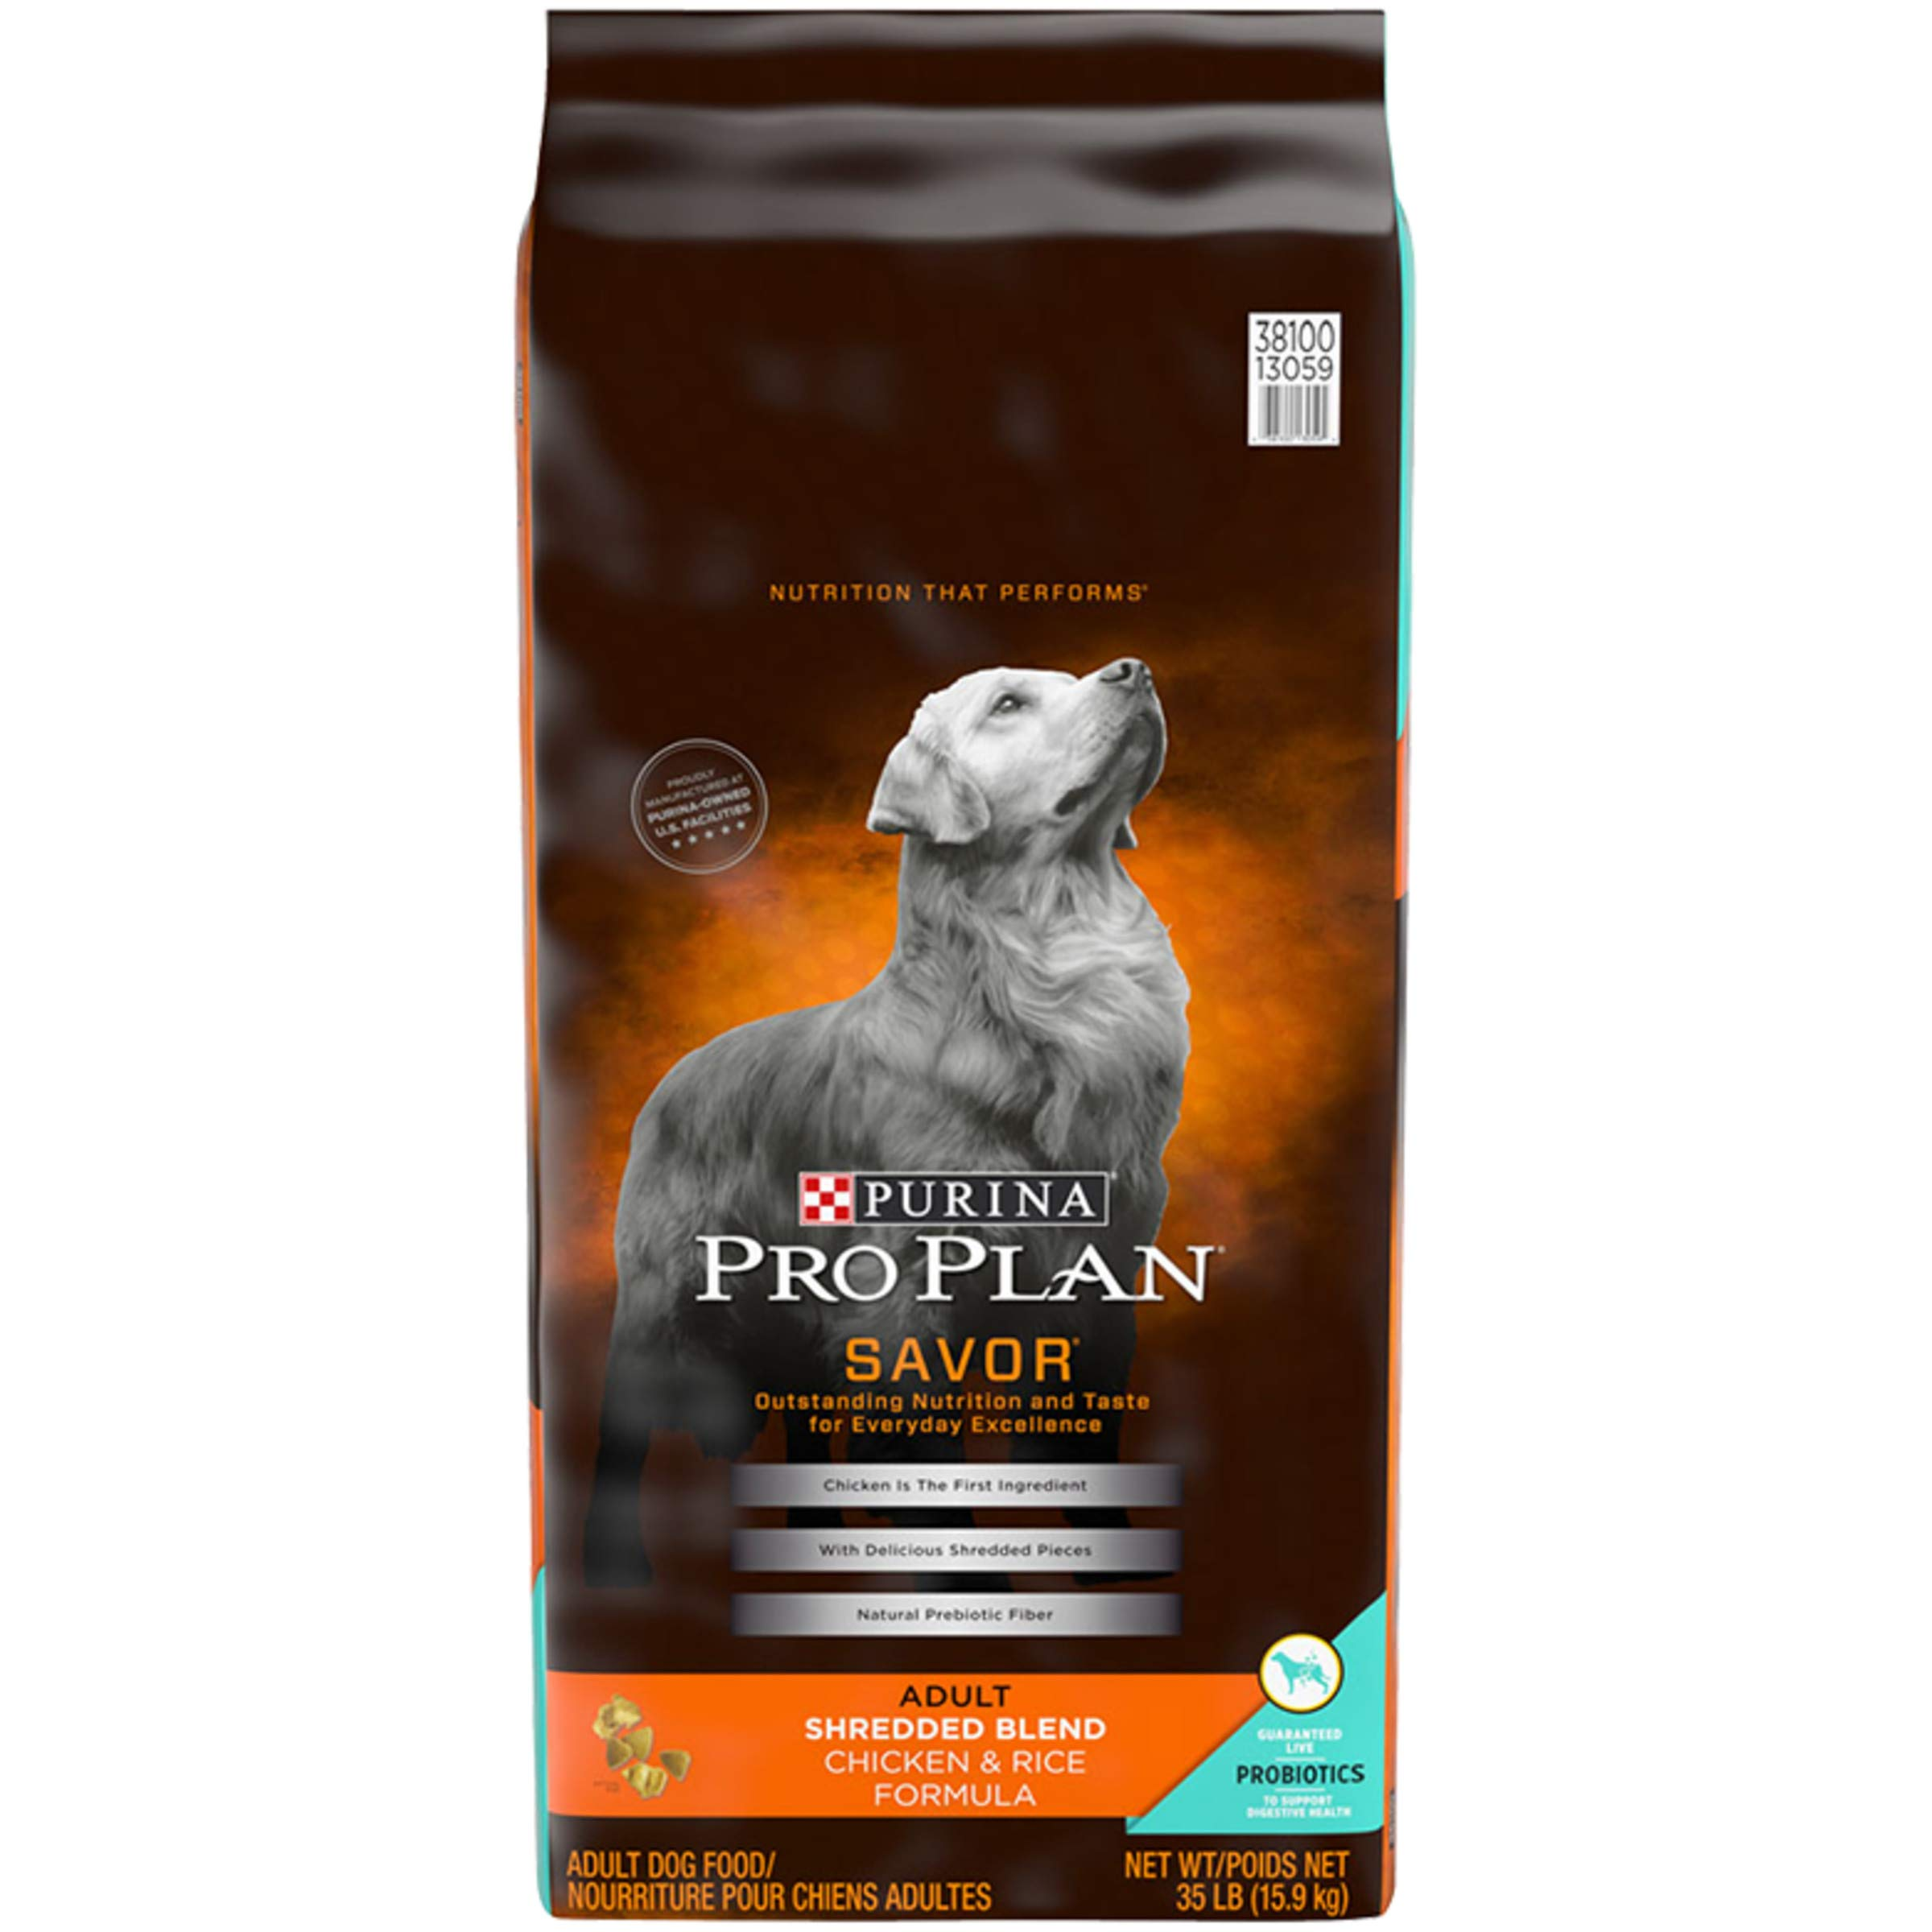 Purina Pro Plan With Probiotics Dry Dog Food, SAVOR Shredded Blend Chicken & Rice Formula - 35 lb. Bag by PURINA Pro Plan